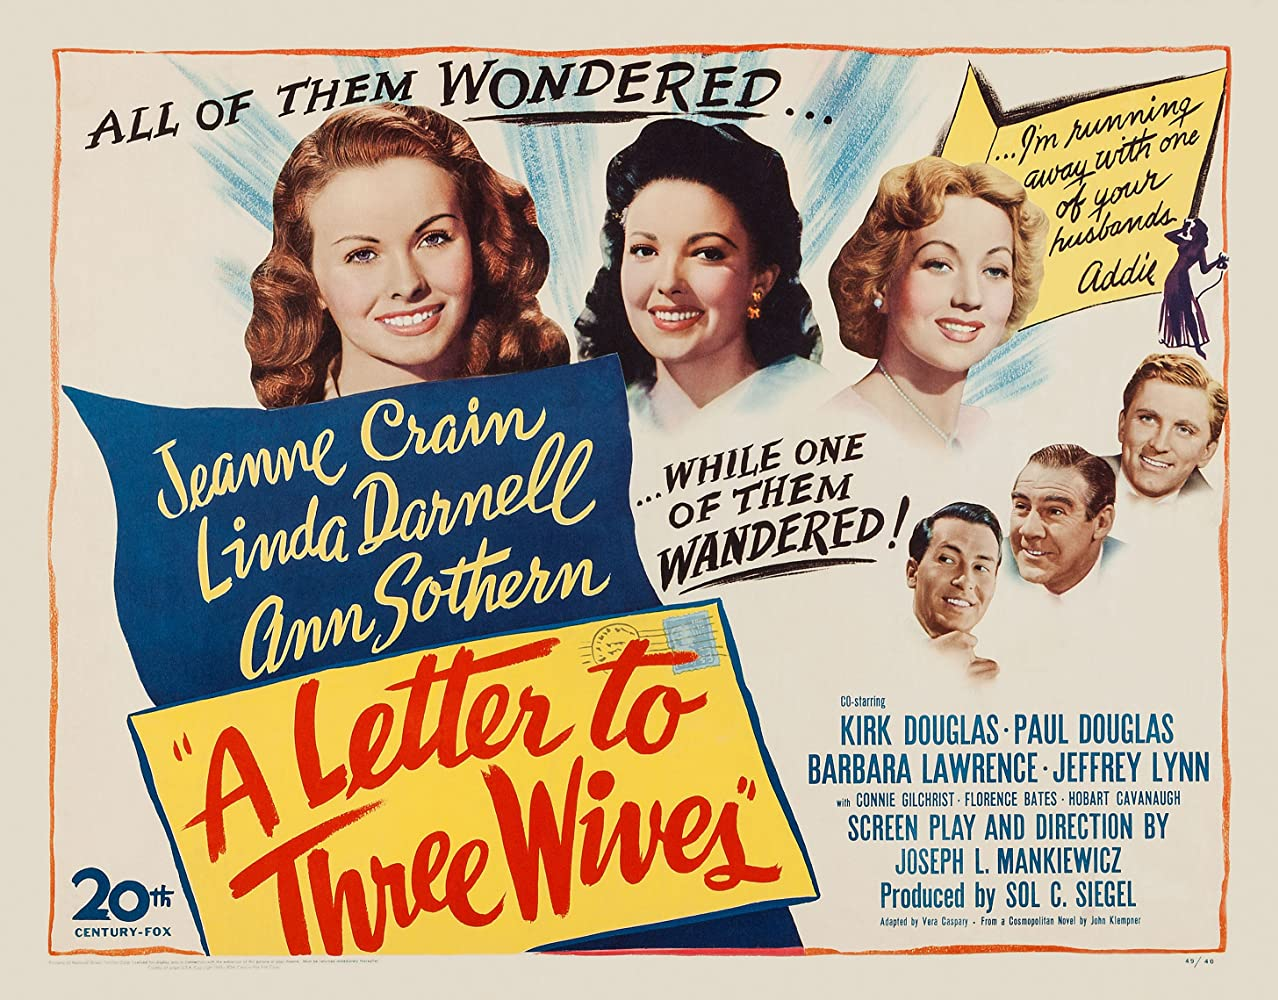 A Letter To Three Wives Image